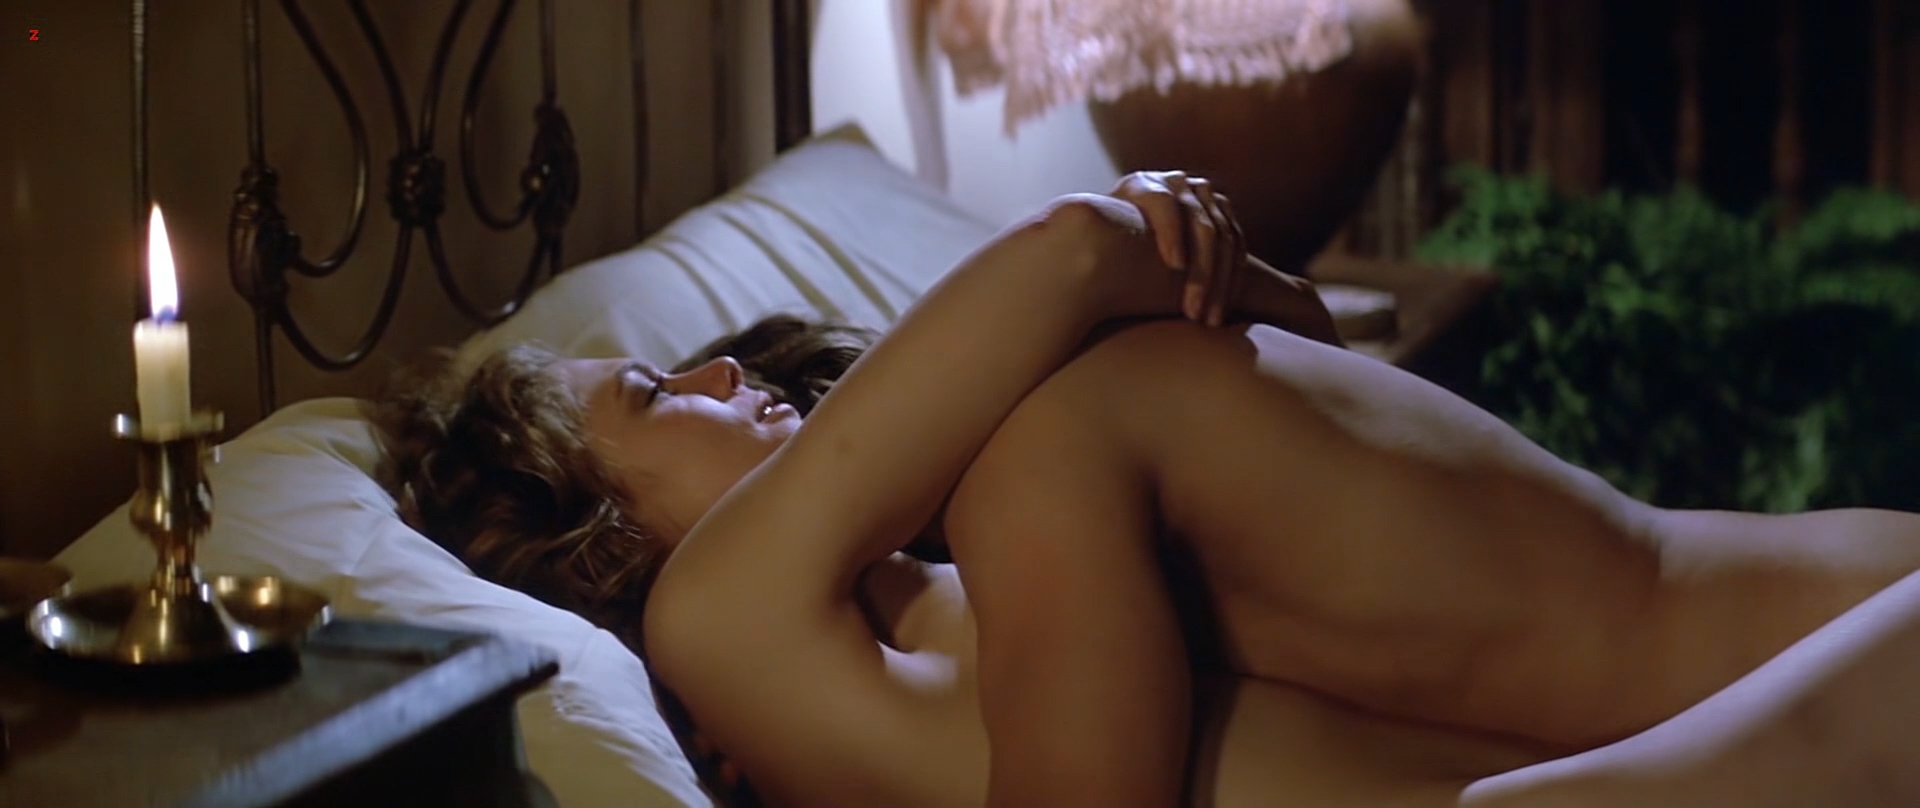 Kathleen Turner nude but covered side boob Kymberly Herrin hot see through - Romancing the Stone (1984) hd1080p BluRay (11)